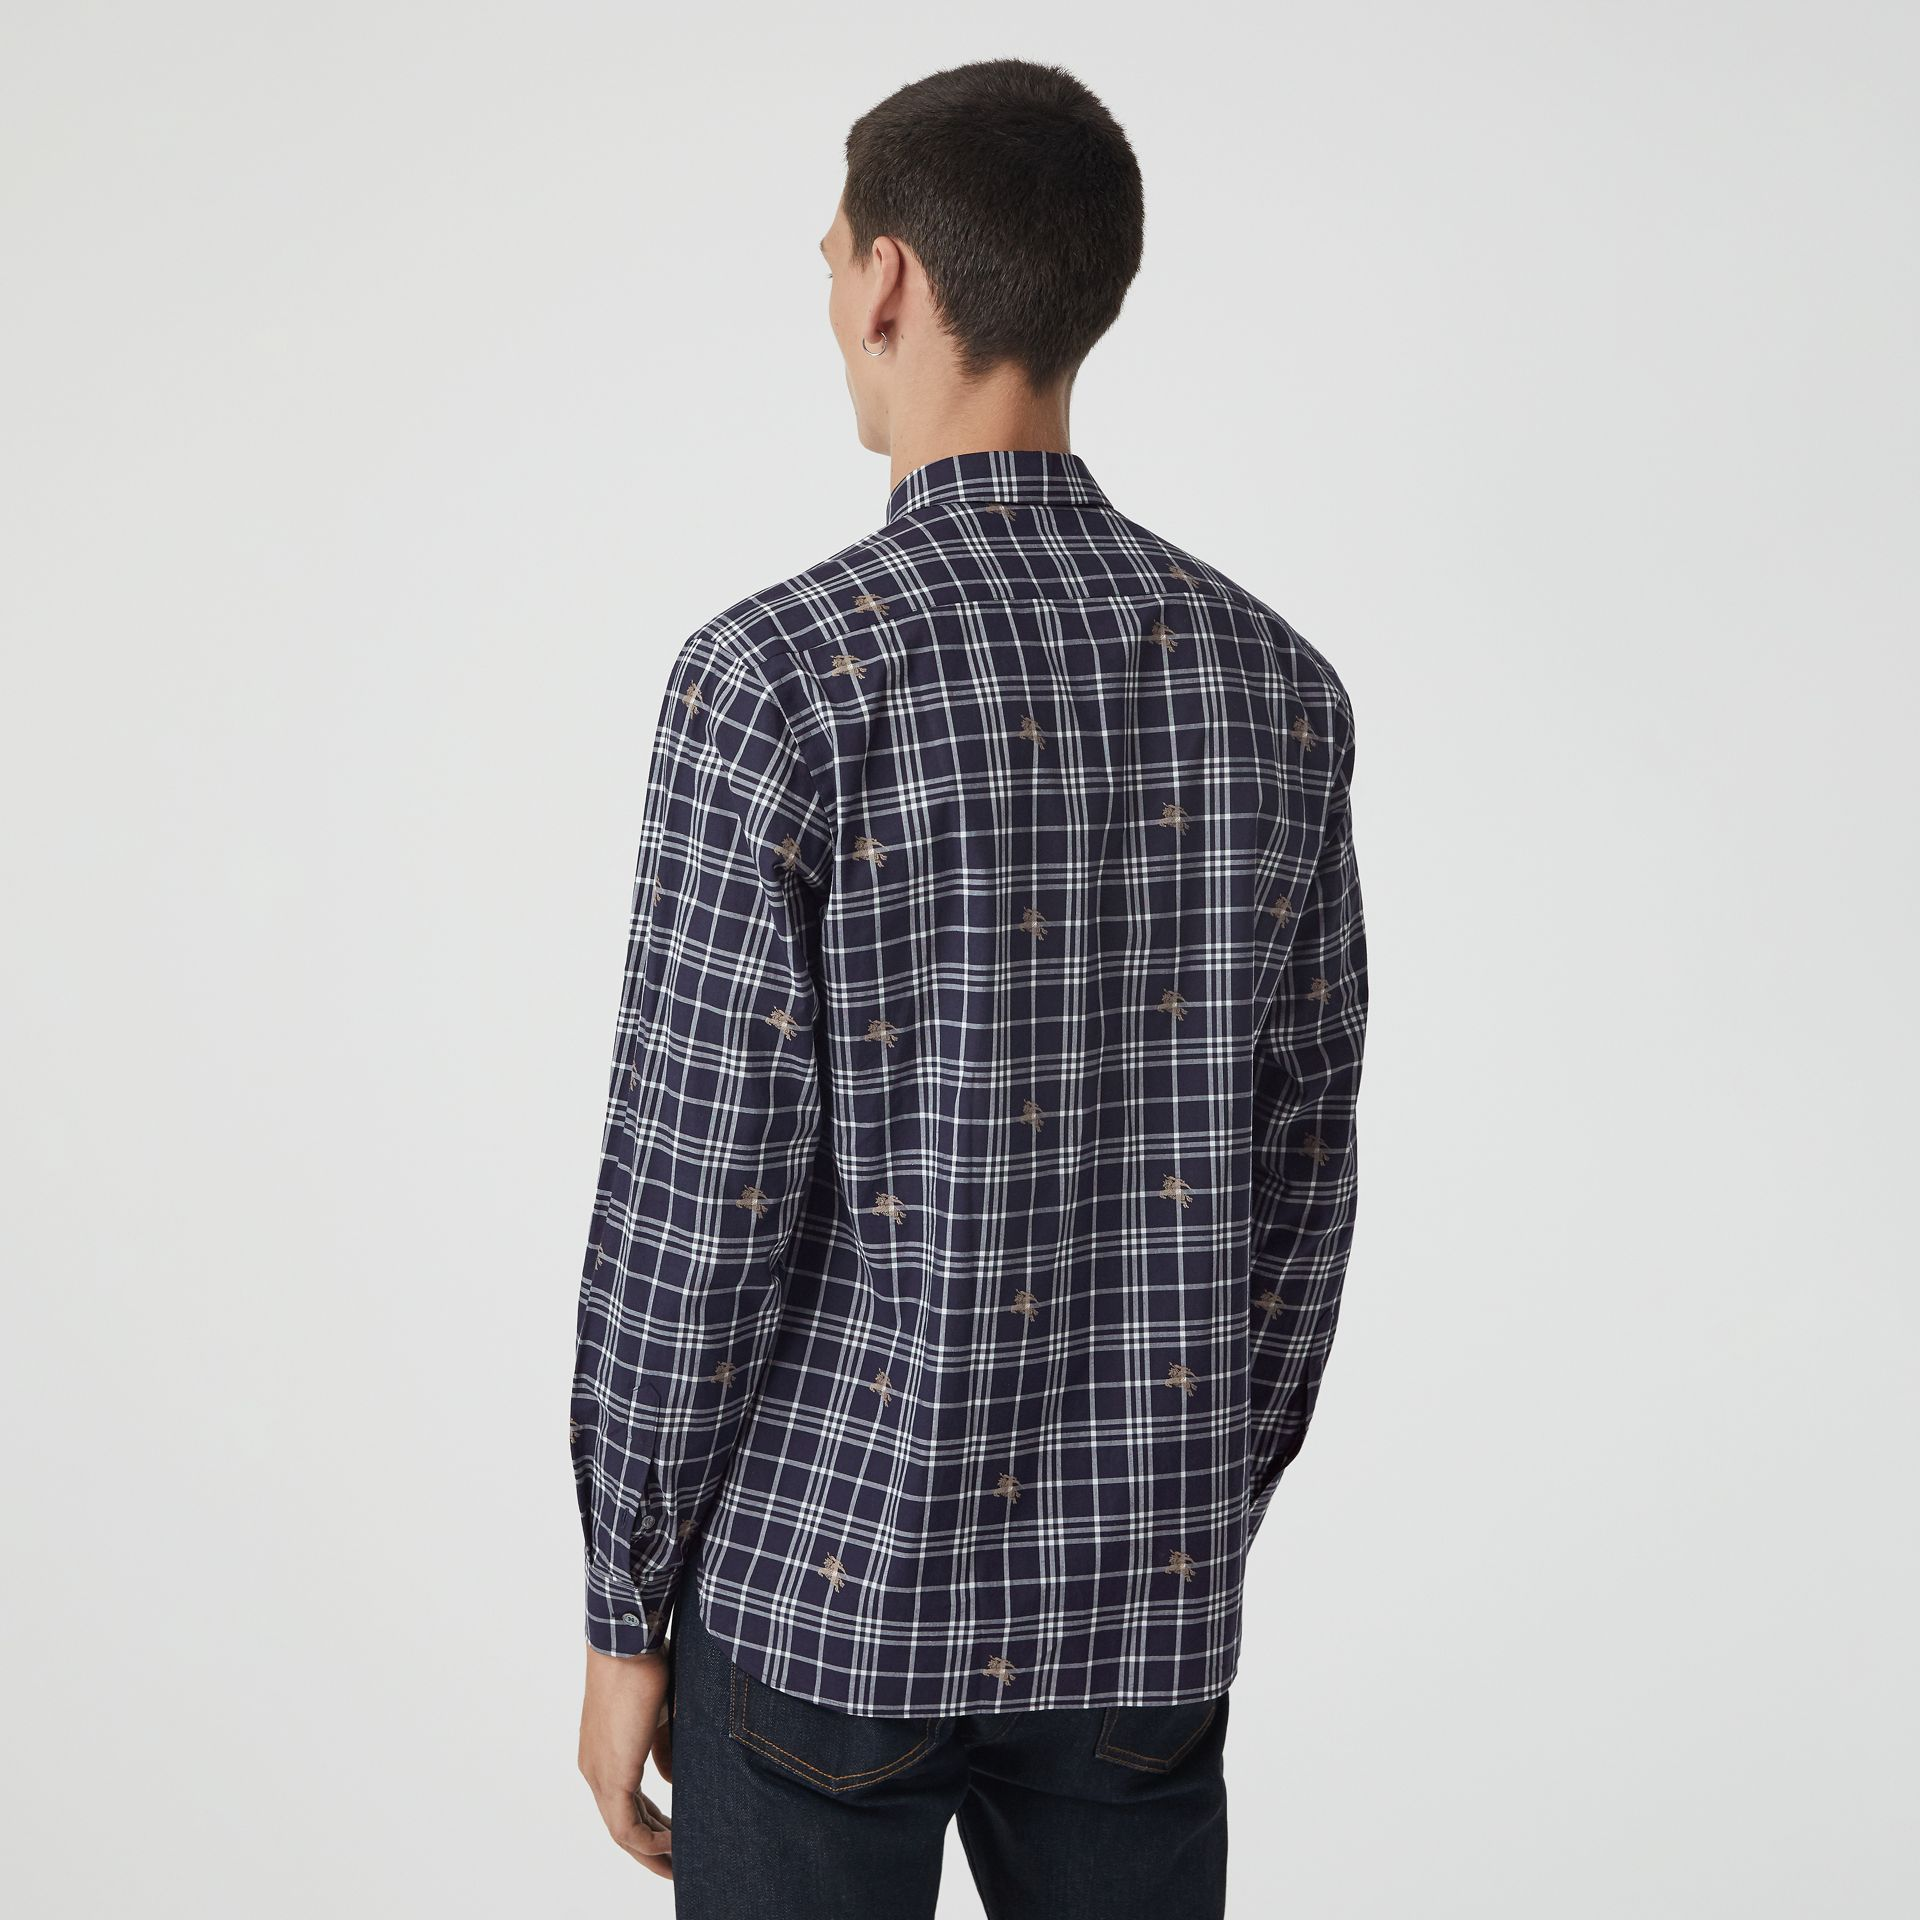 Equestrian Knight Check Cotton Shirt in Navy - Men | Burberry - gallery image 2